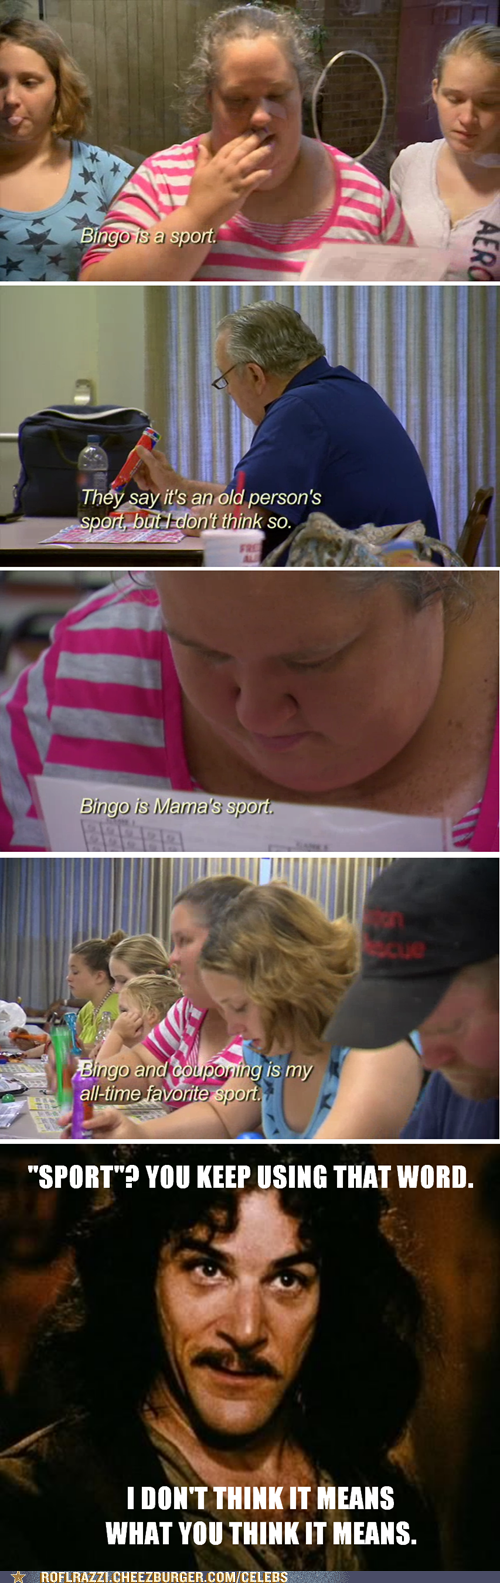 sports you keep using that word TV honey boo-boo bingo - 7170971648